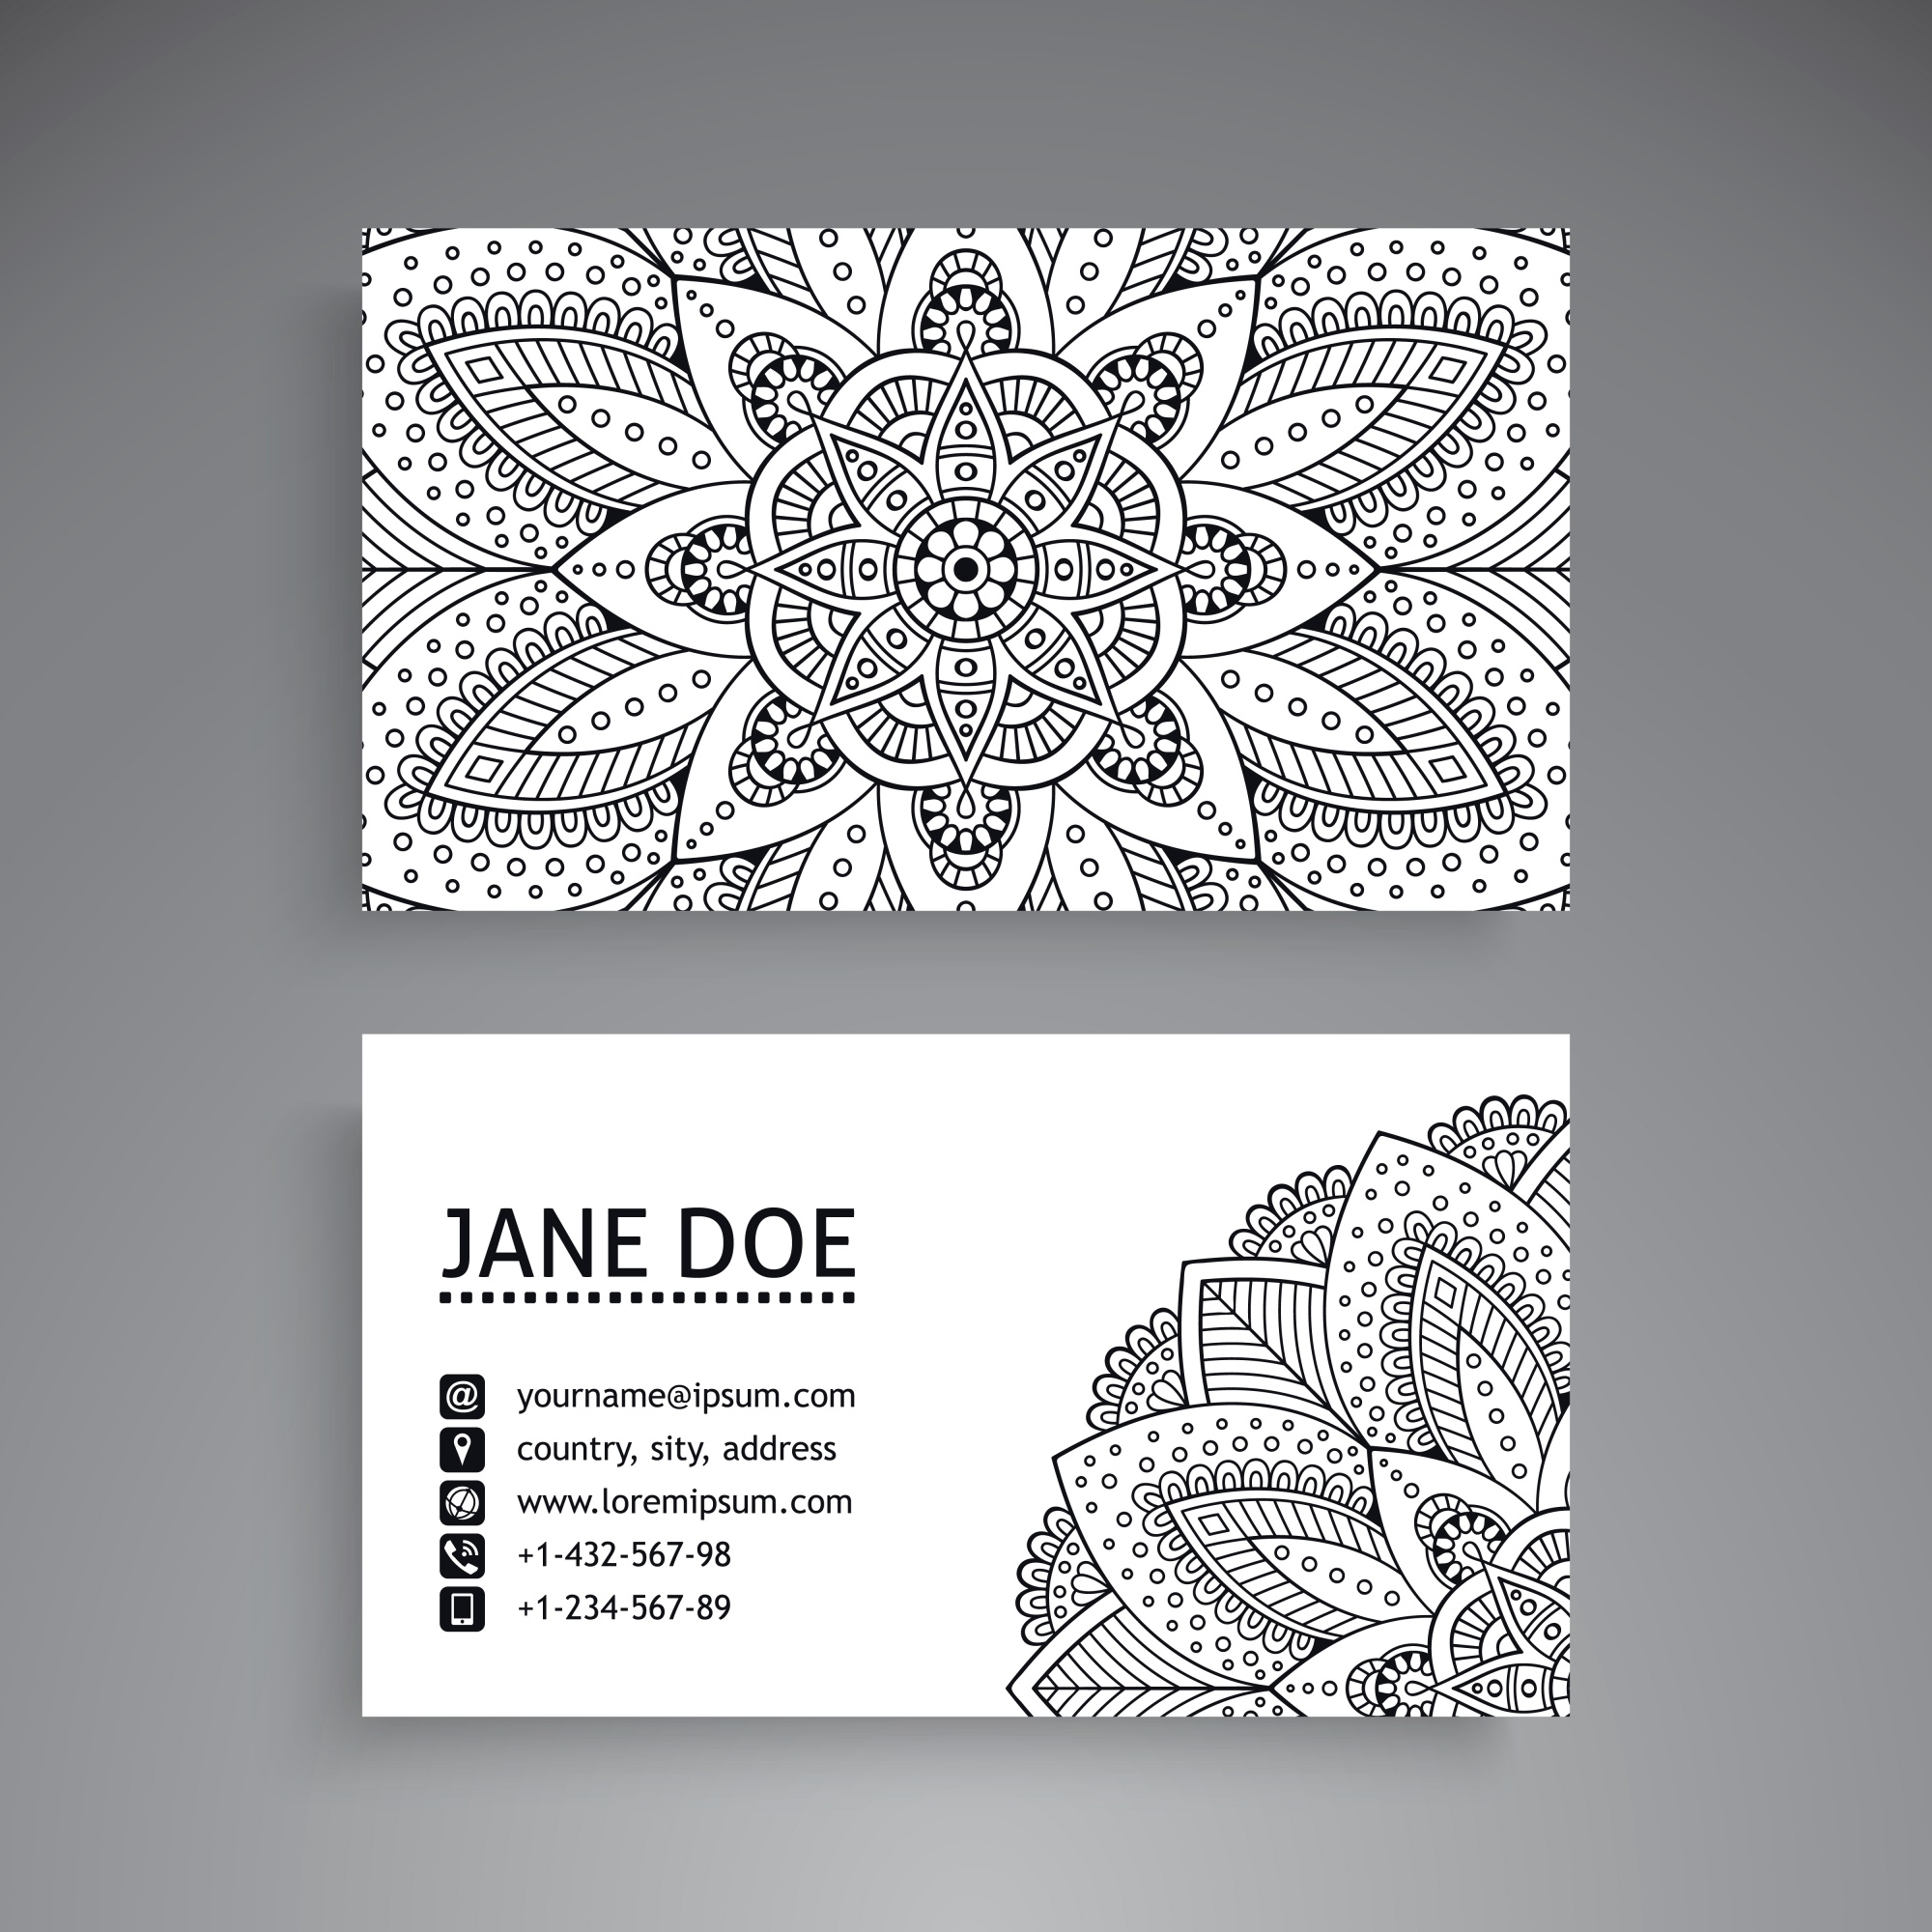 Black and white business card with mandala concept